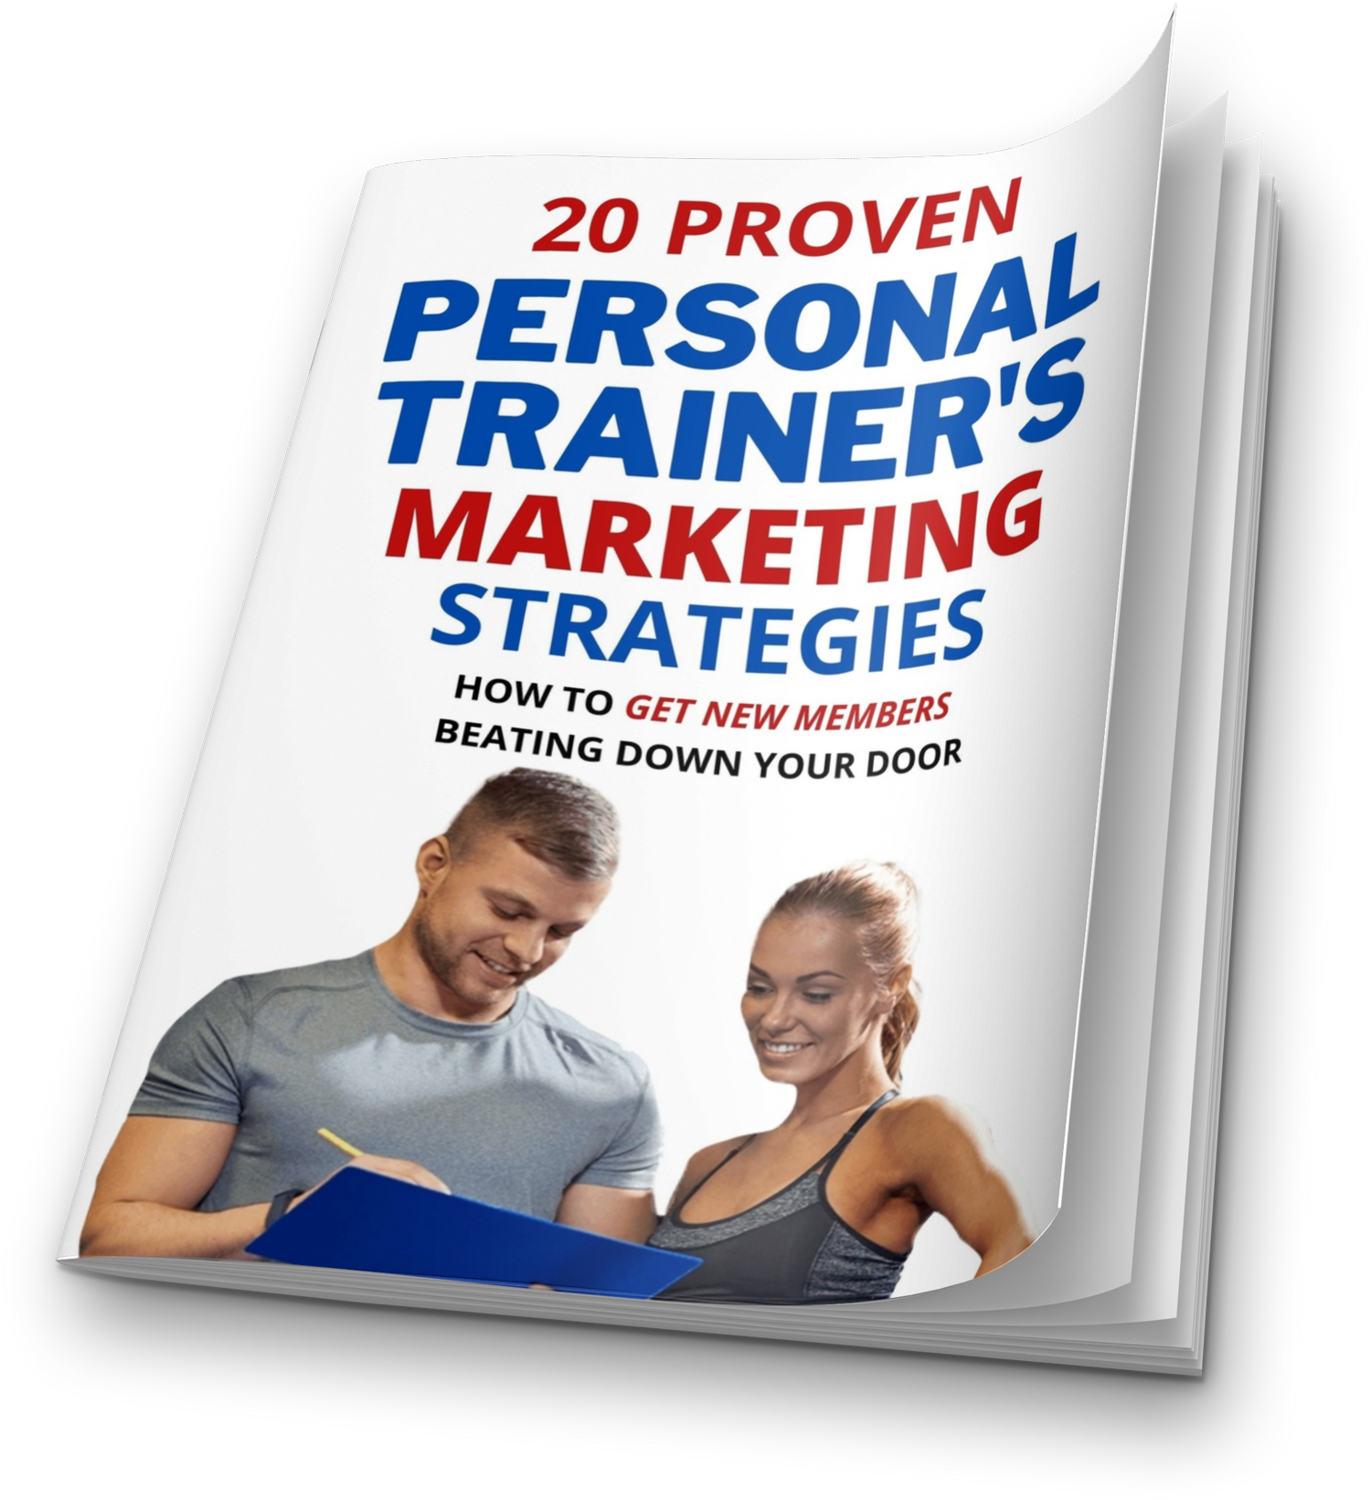 20 Proven Personal Trainers Marketing Strategies